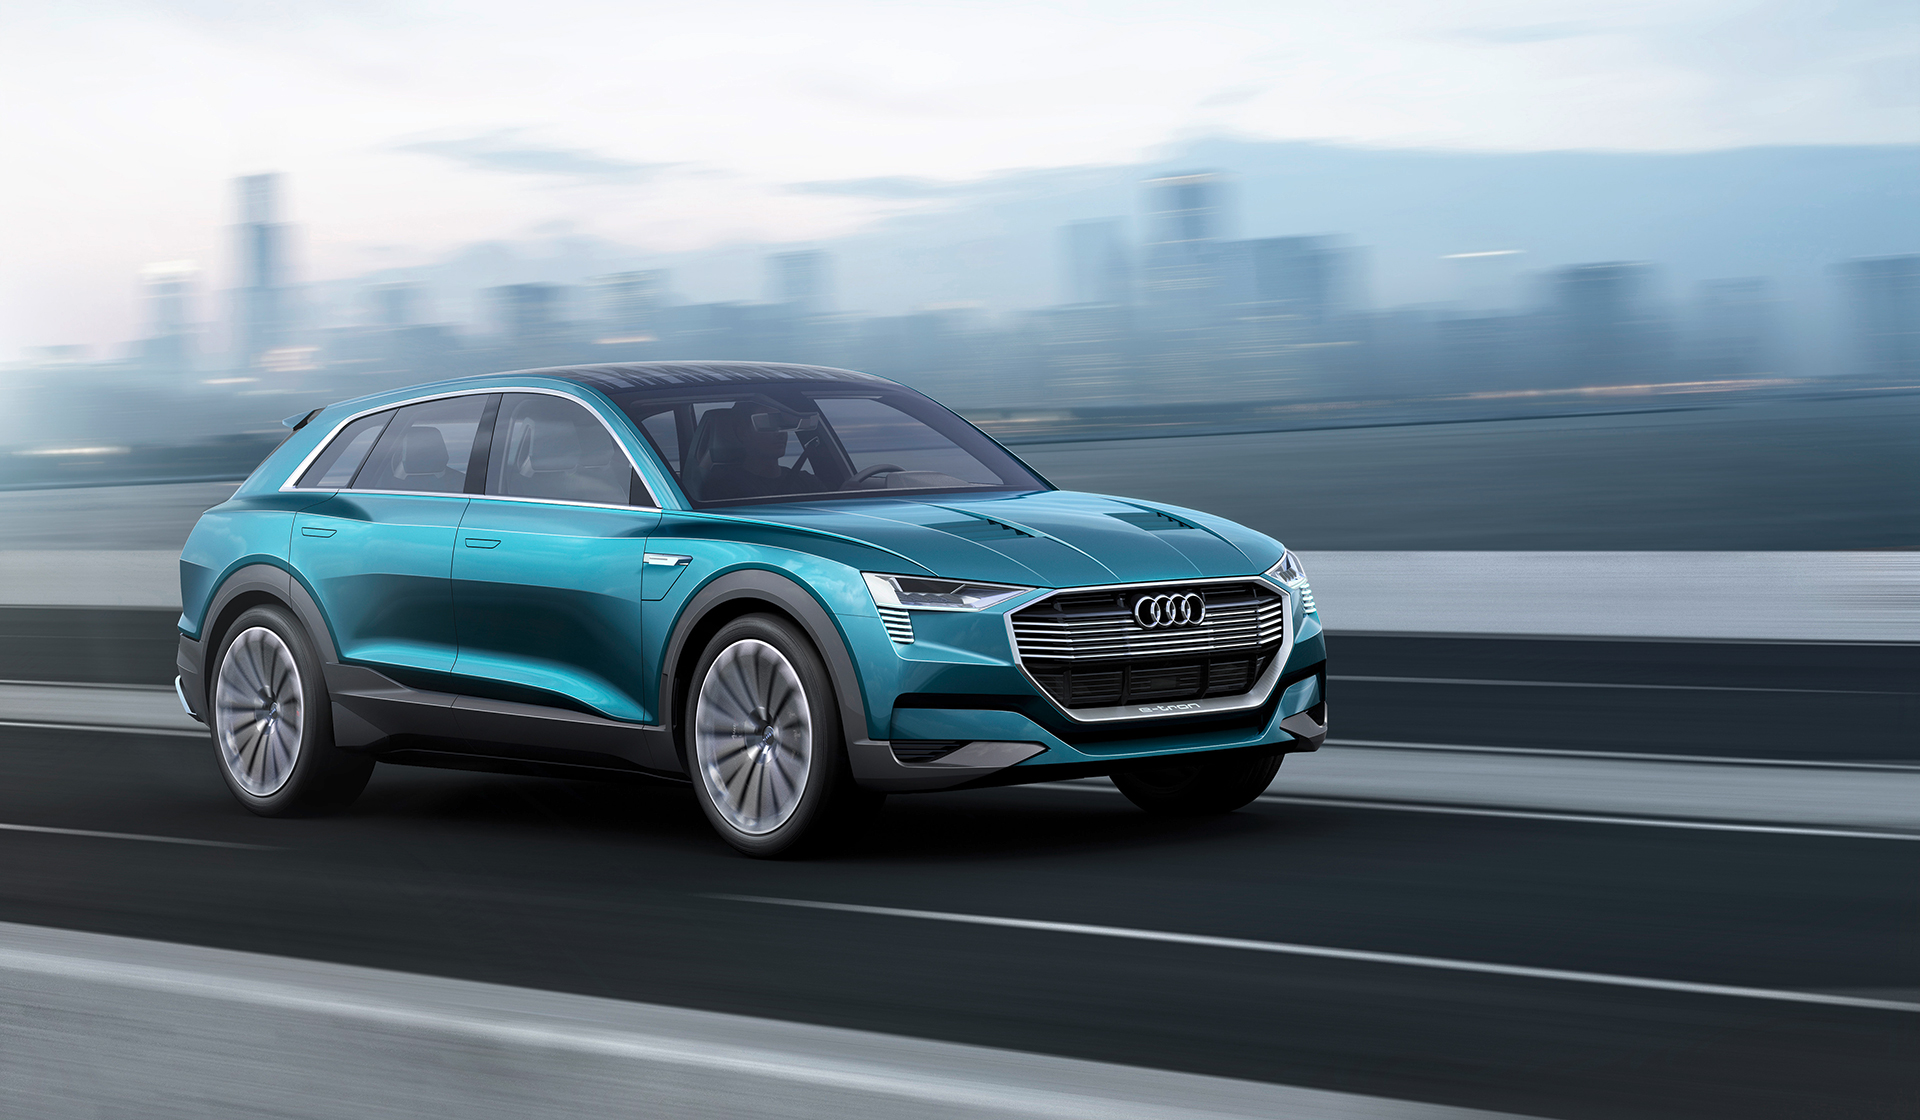 Audi e-tron quattro concept - 2016 - front side-face / profil avant - on road / sur route